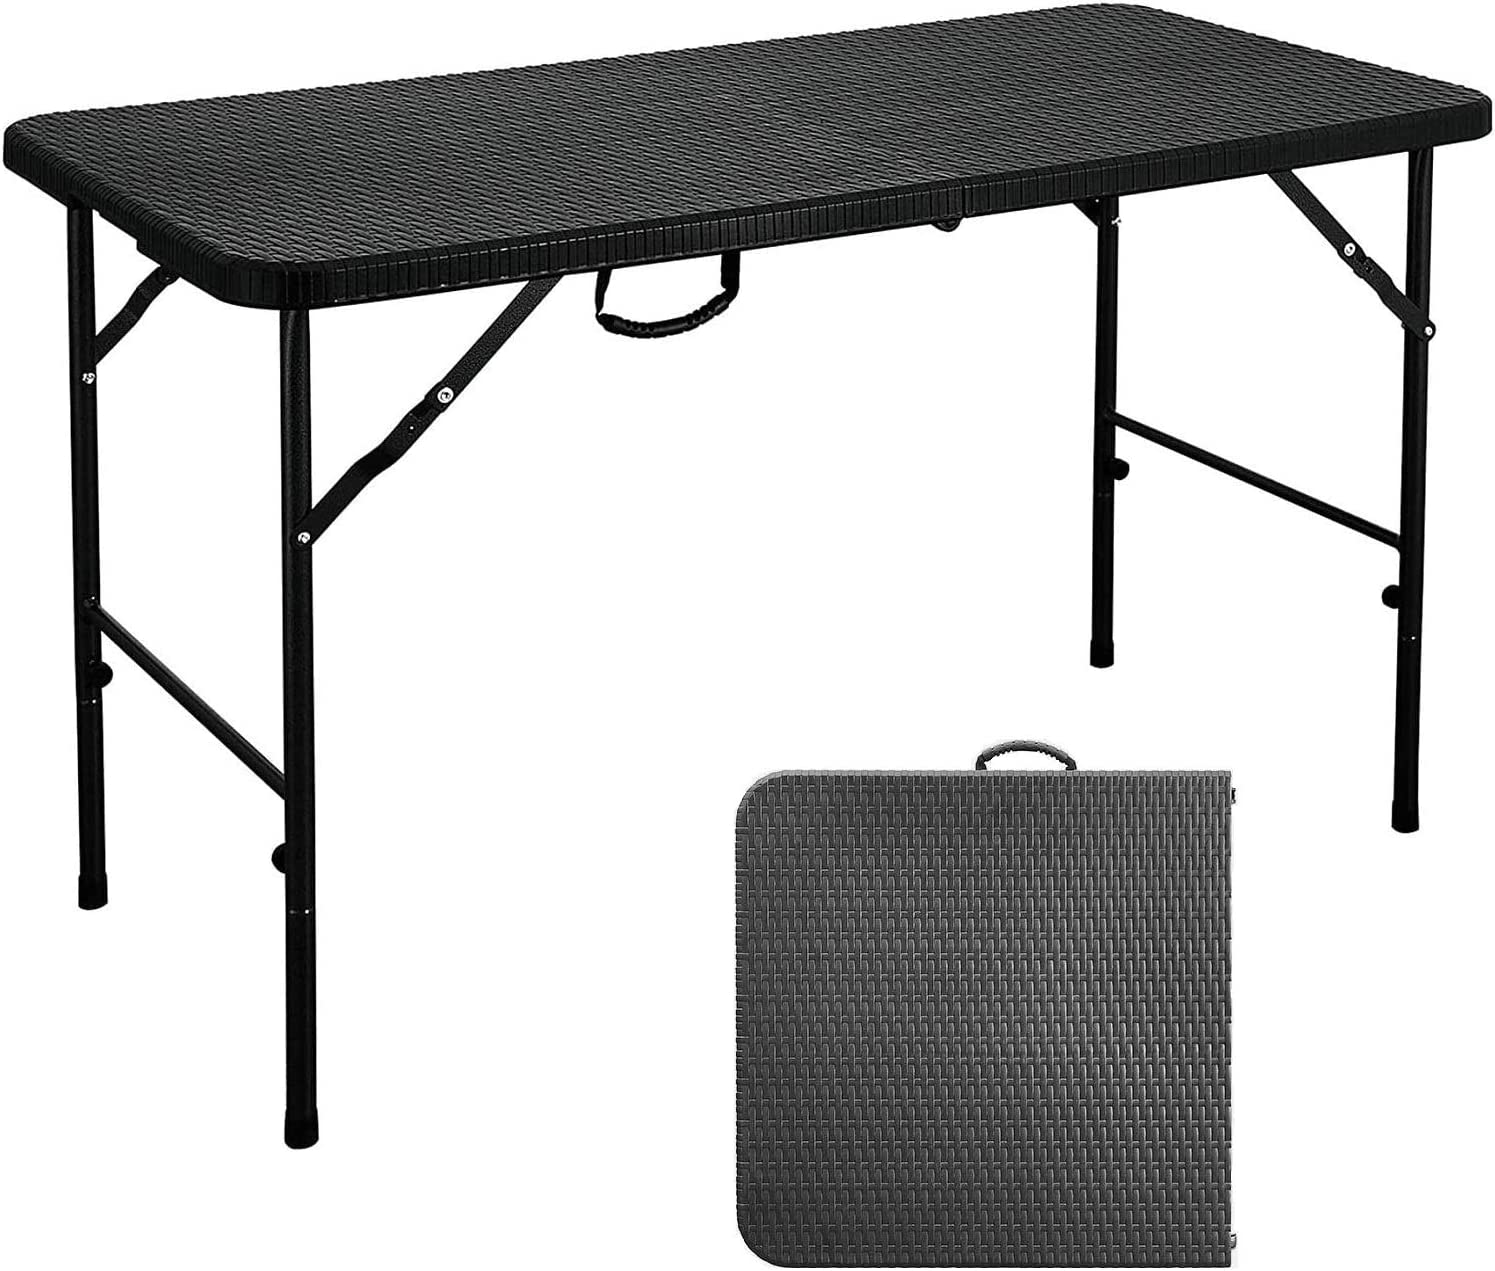 Folding Table Small Choice Portable Indefinitely Handl with Foldable Carrying